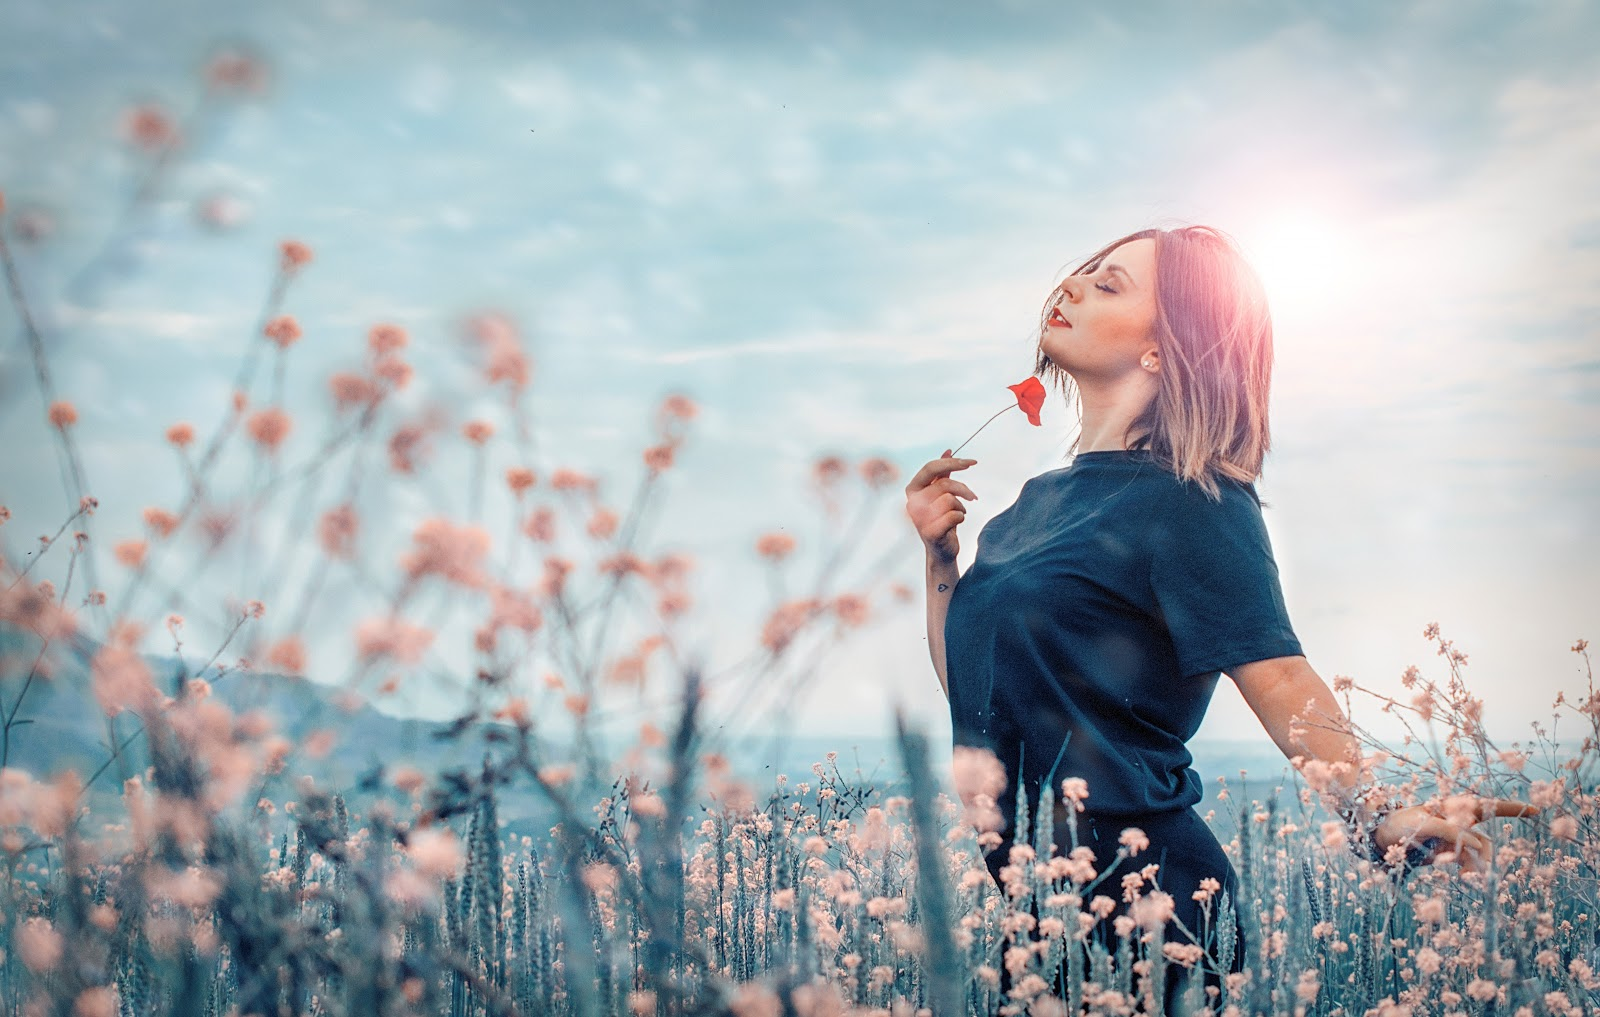 Breathing Exercises For A Happier and Healthier You